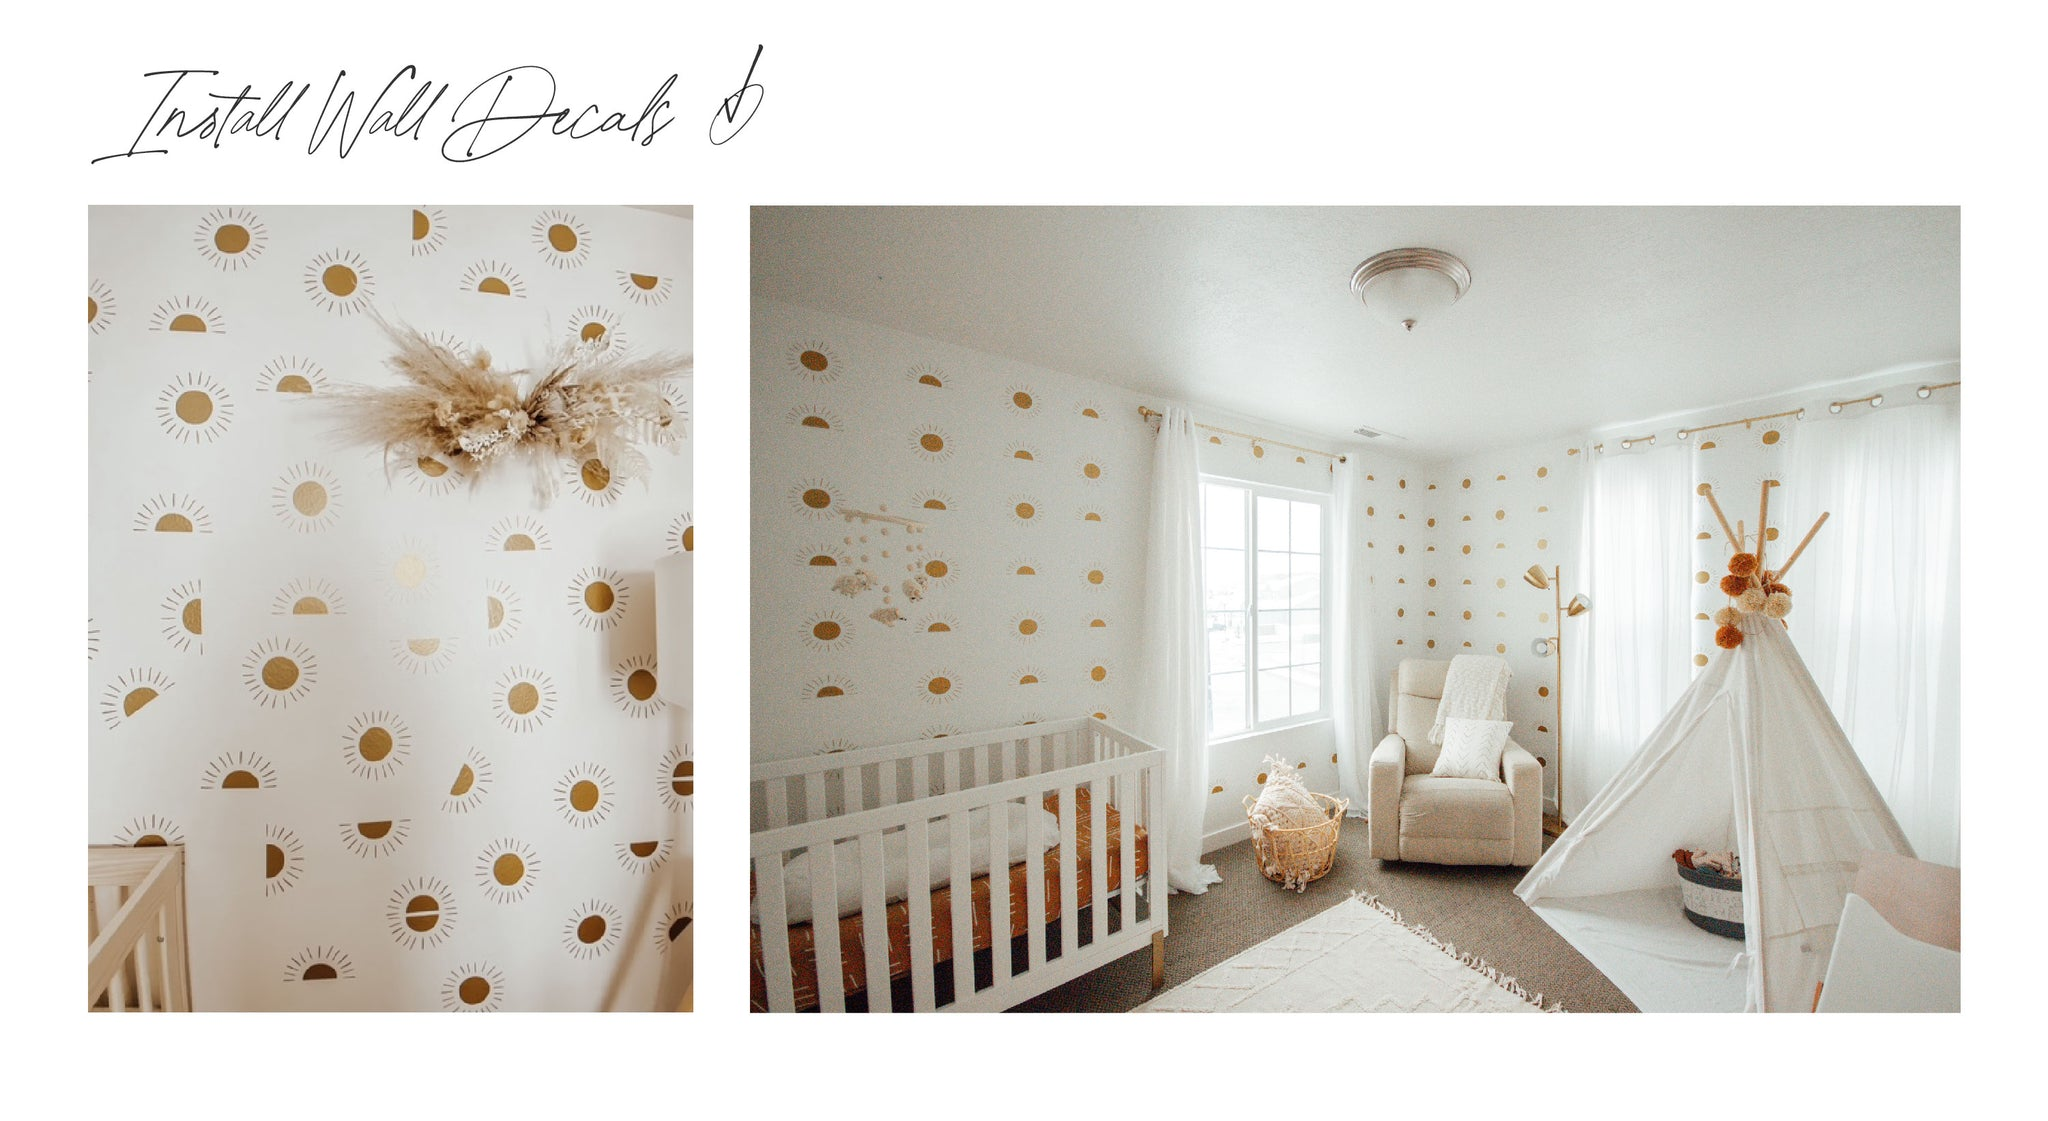 Room with sun wall decals